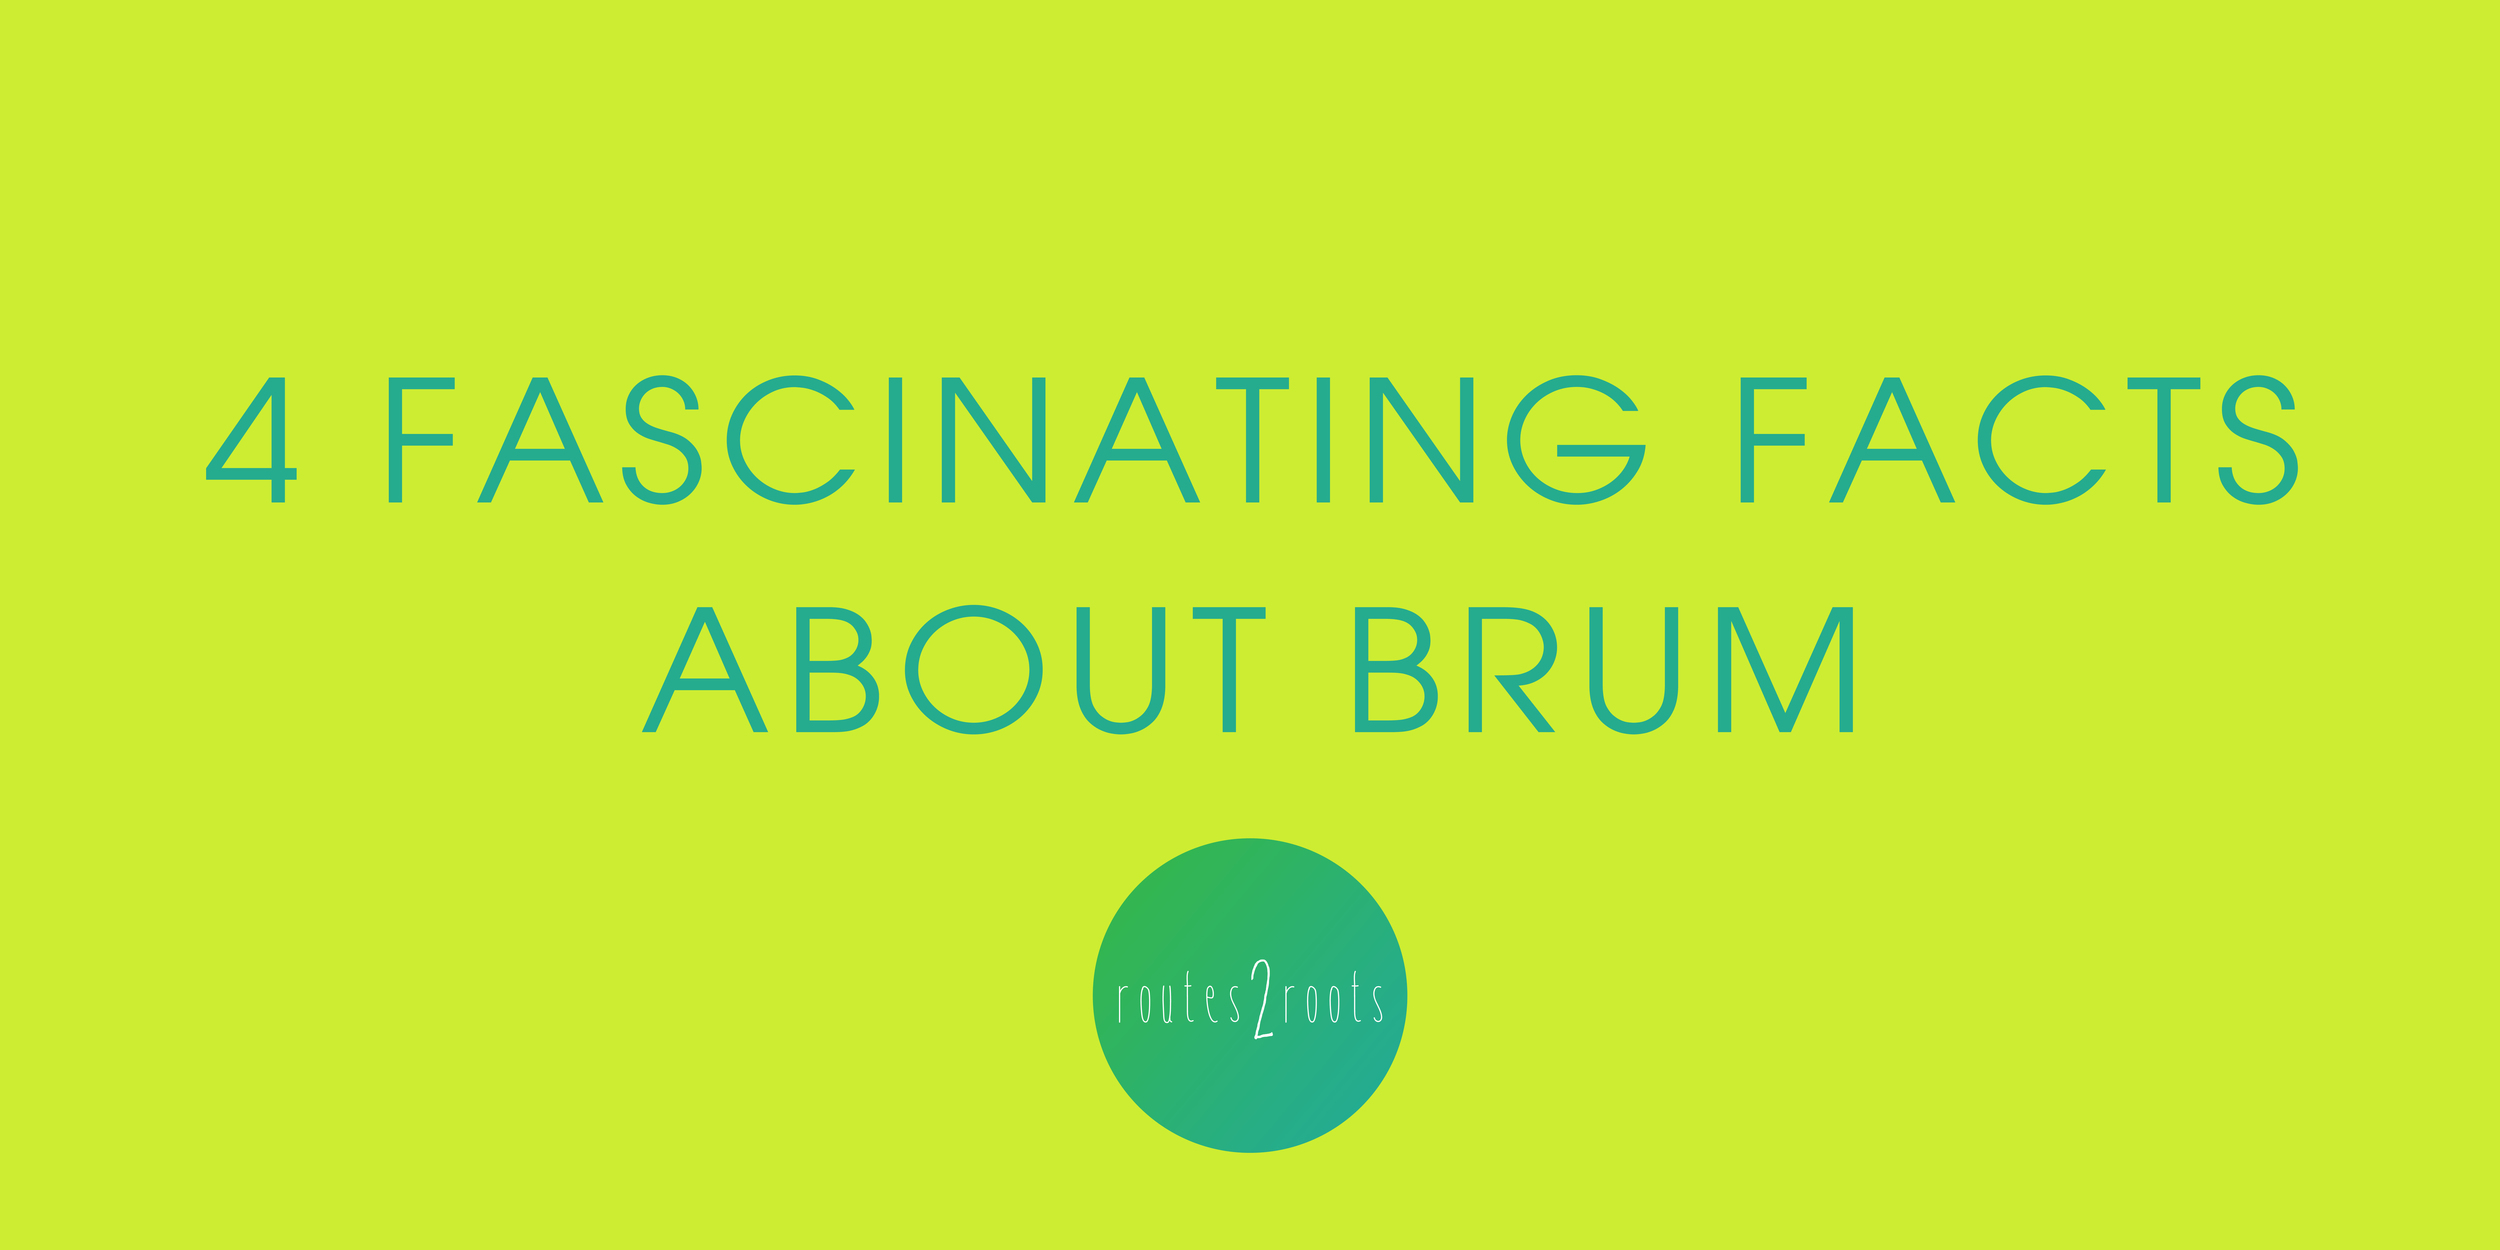 Four fascinating facts about Brum -Elise Turner